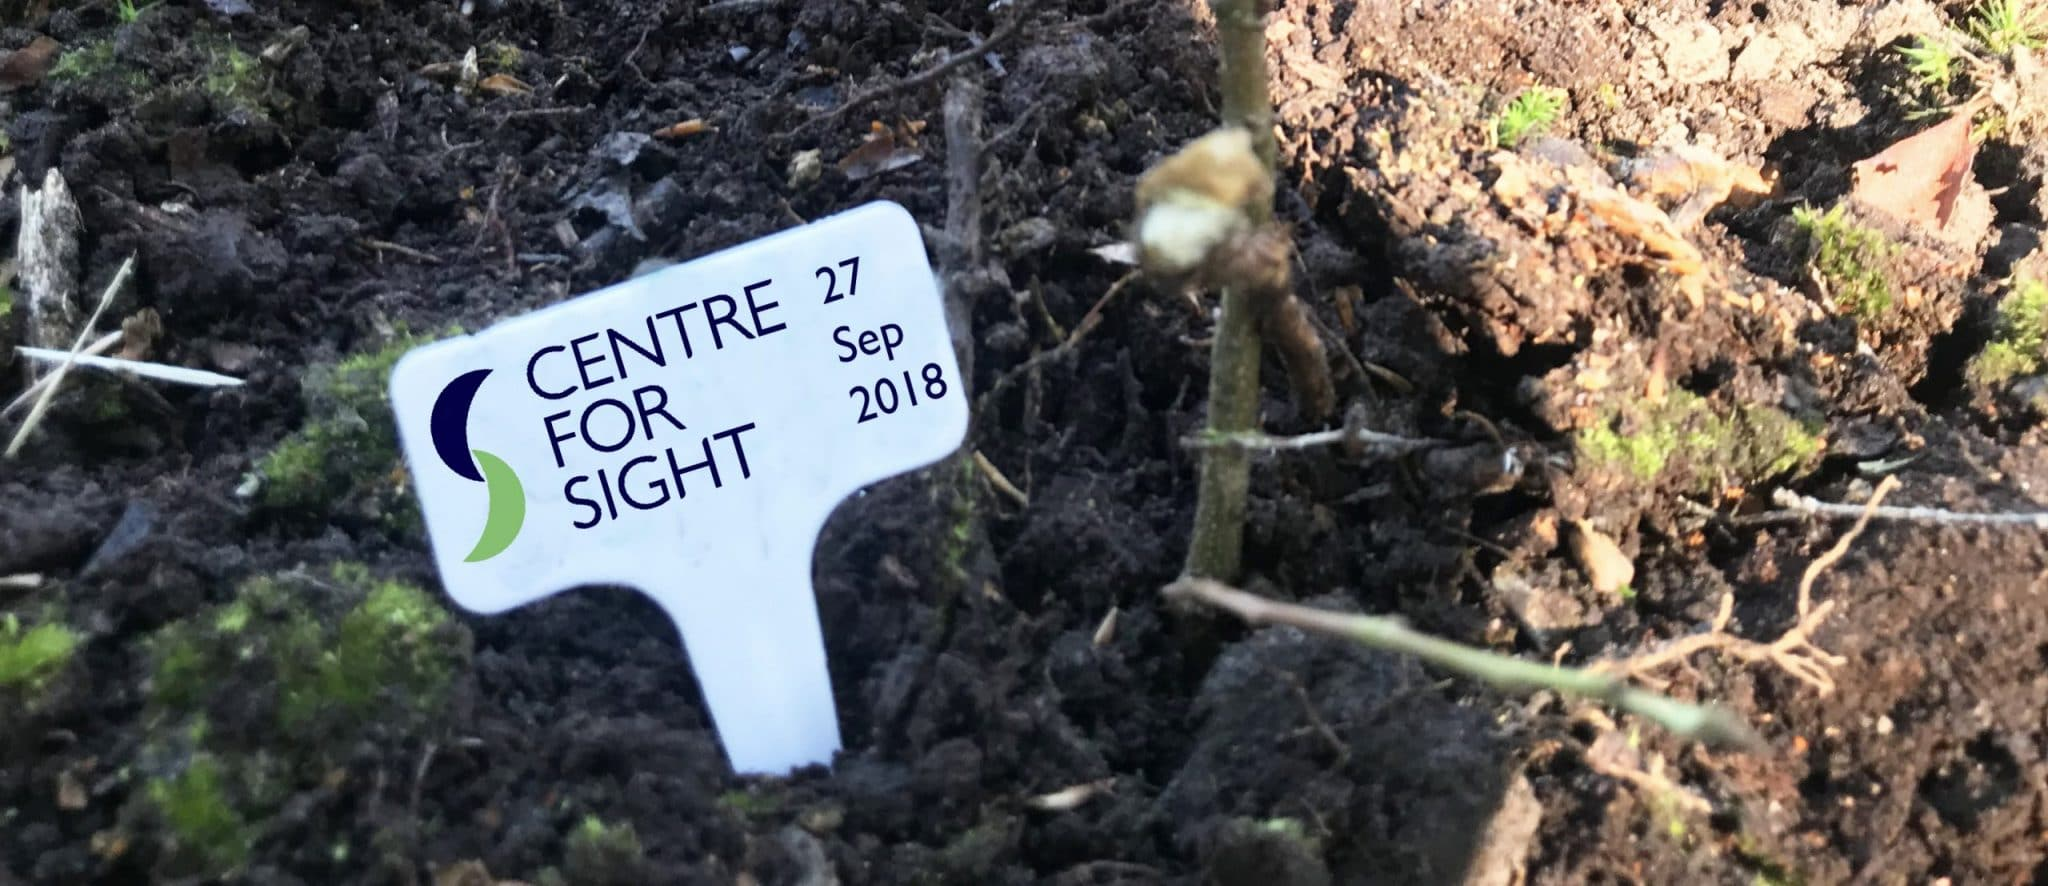 Centre for Sight oak tree plantation at Hindleap Warren - Wych Cross